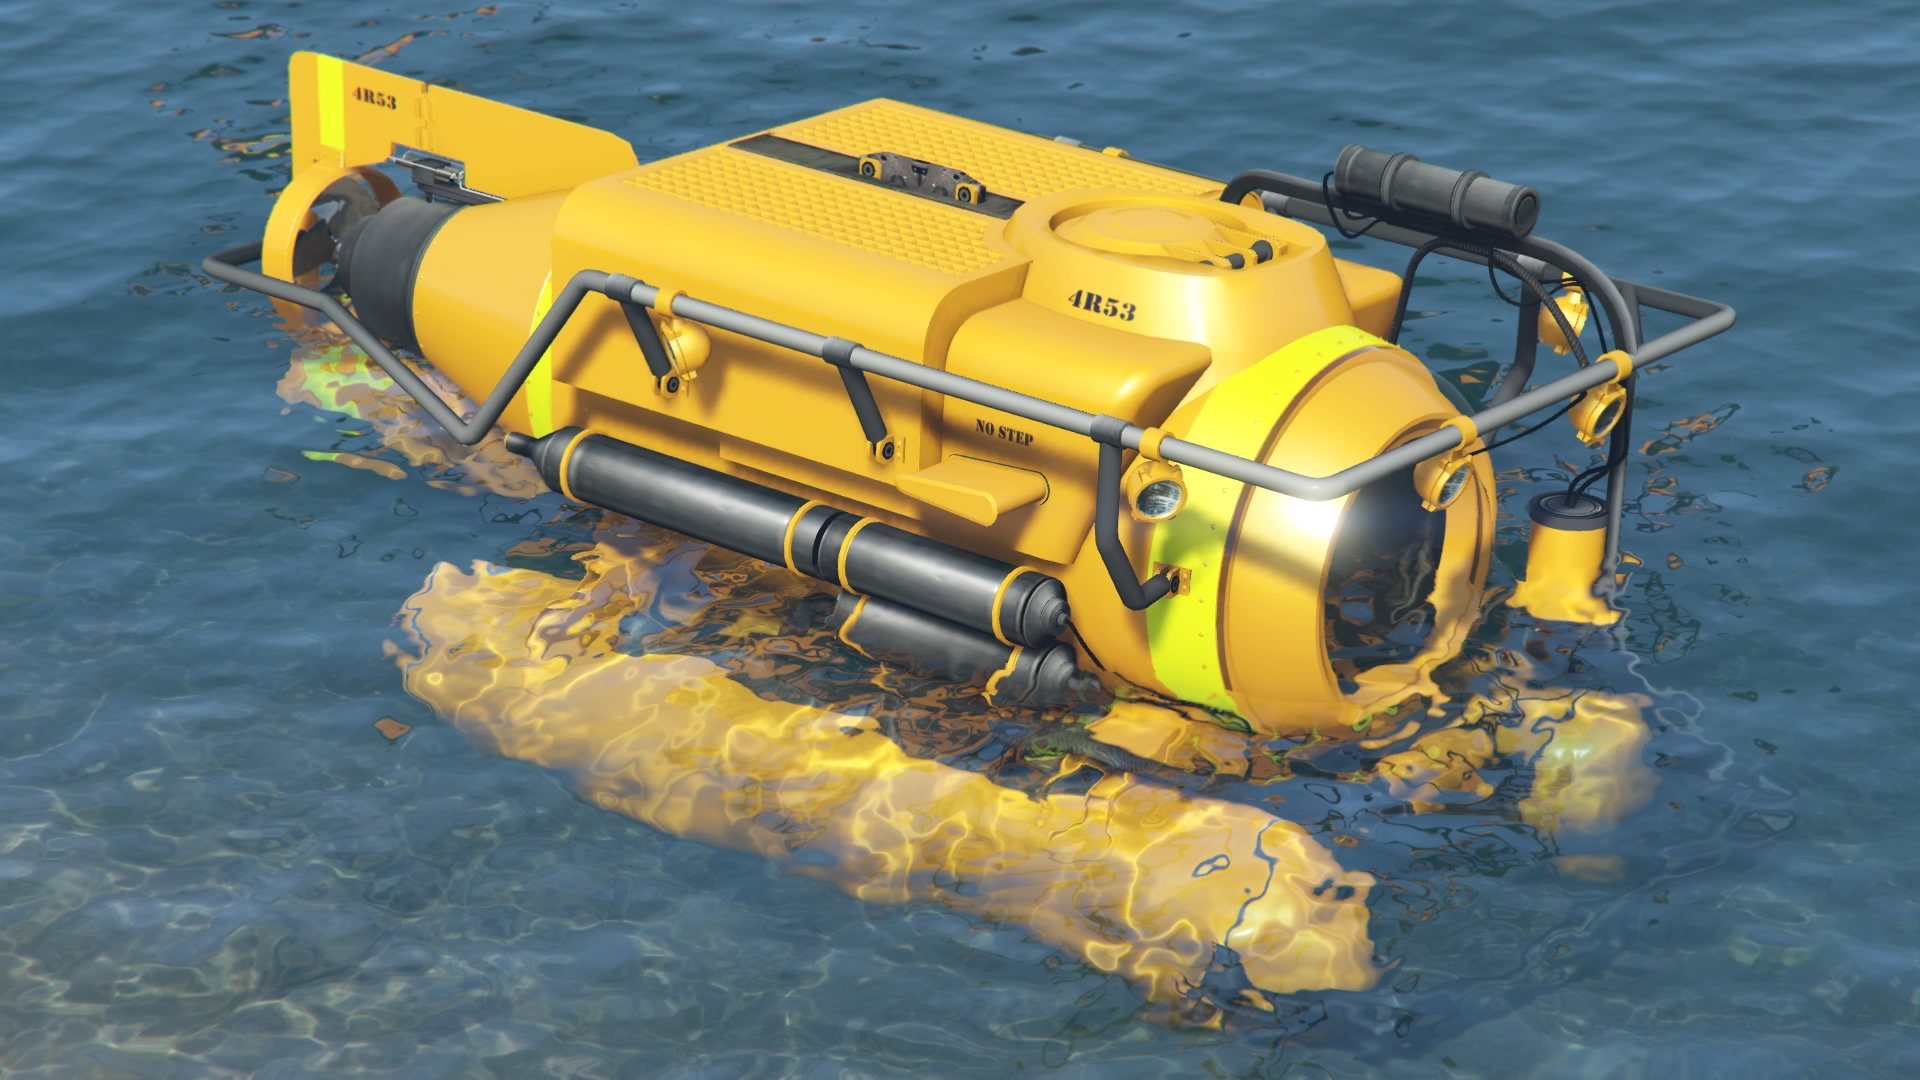 Submersible | GTA Wiki | FANDOM powered by Wikia